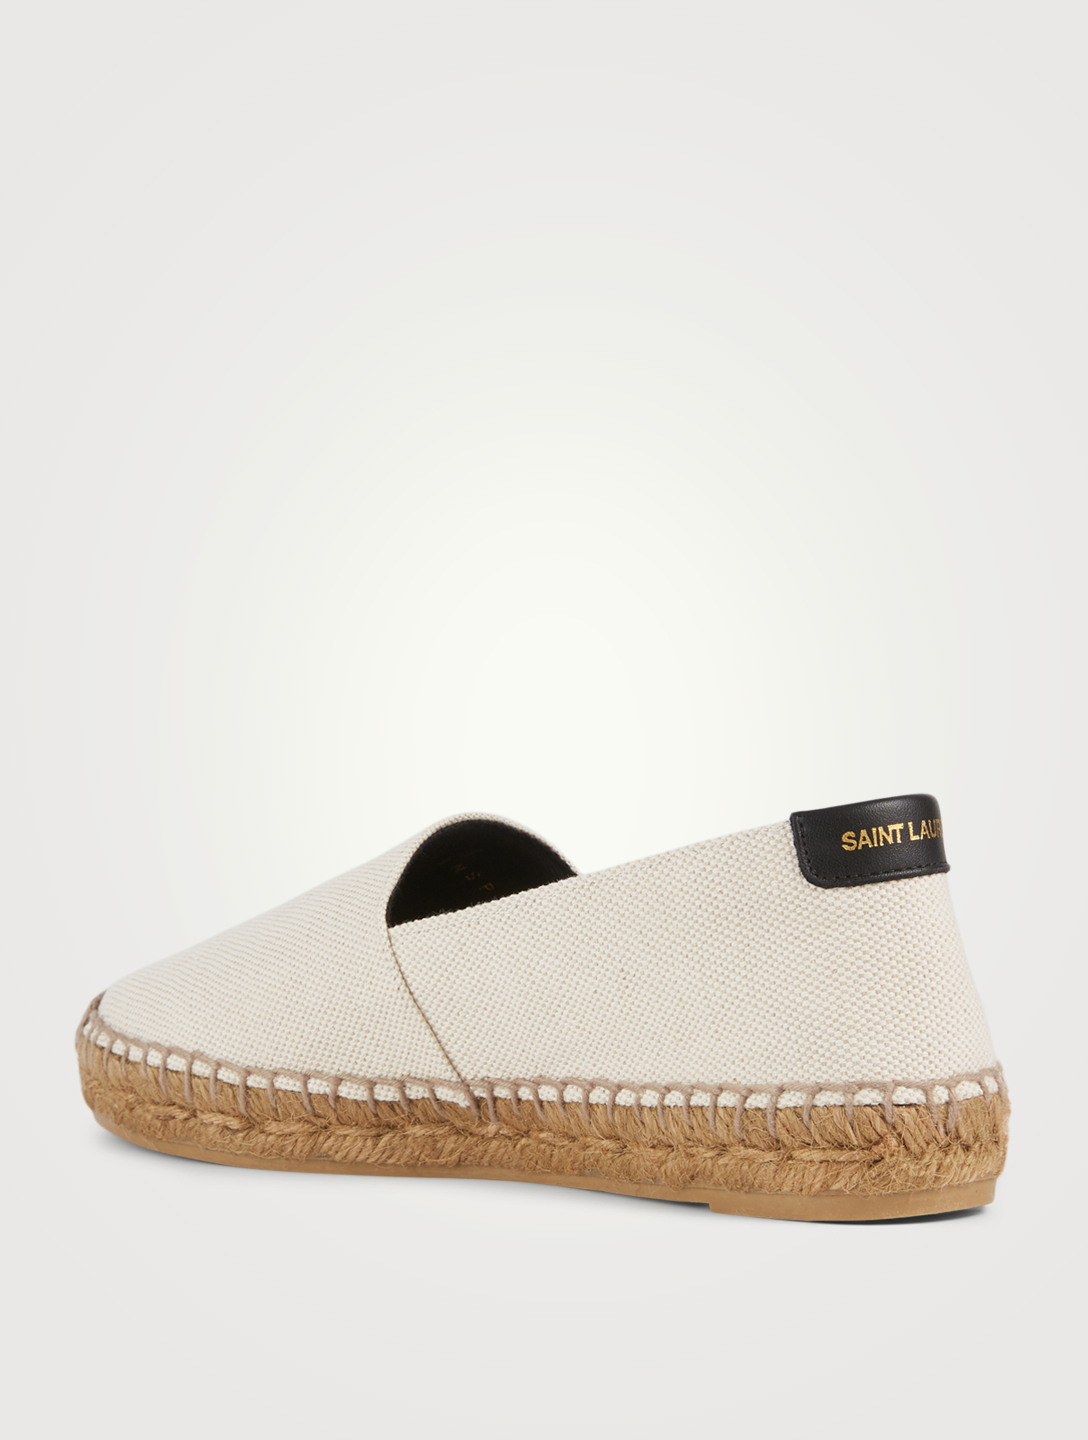 SAINT LAURENT SL Canvas Espadrilles Women's White